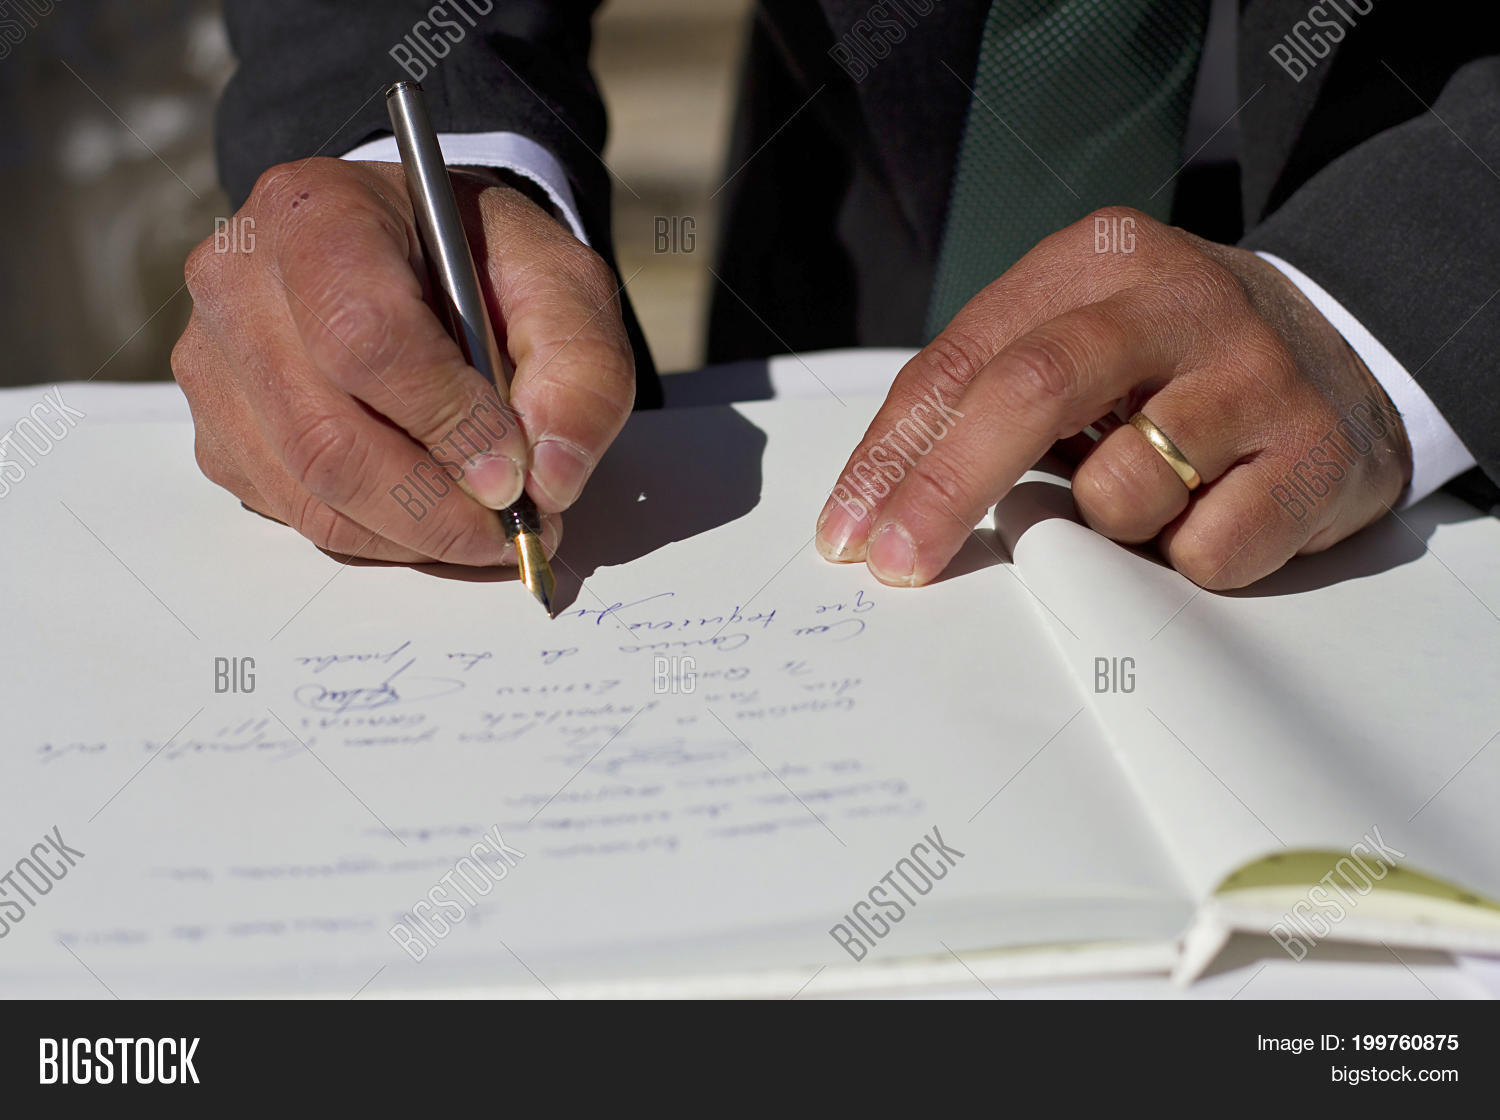 Witness Signing Legal Image Photo Free Trial Bigstock - Signing legal documents